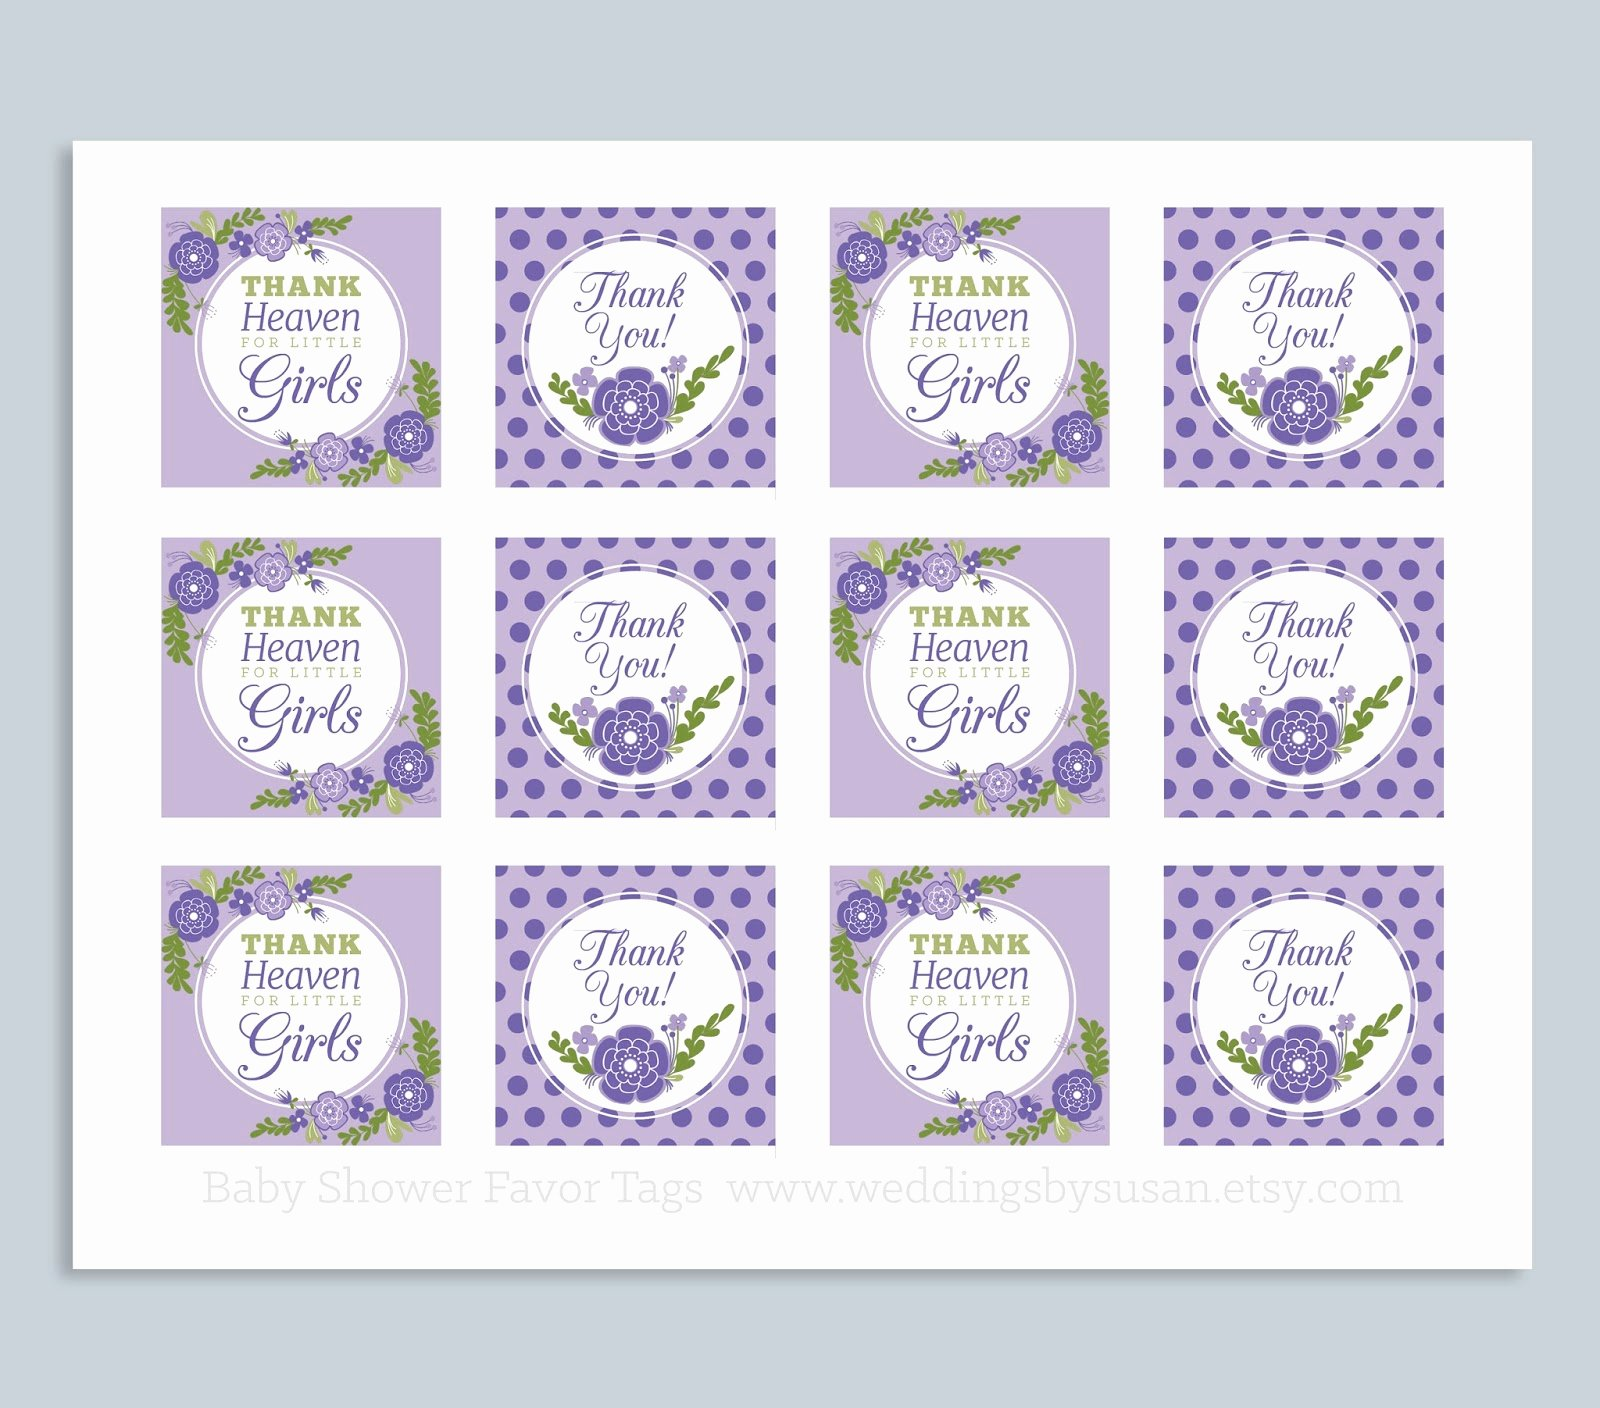 Free Printable Baby Shower Labels Awesome Weddings by Susan Printable Baby Shower Signs Games and